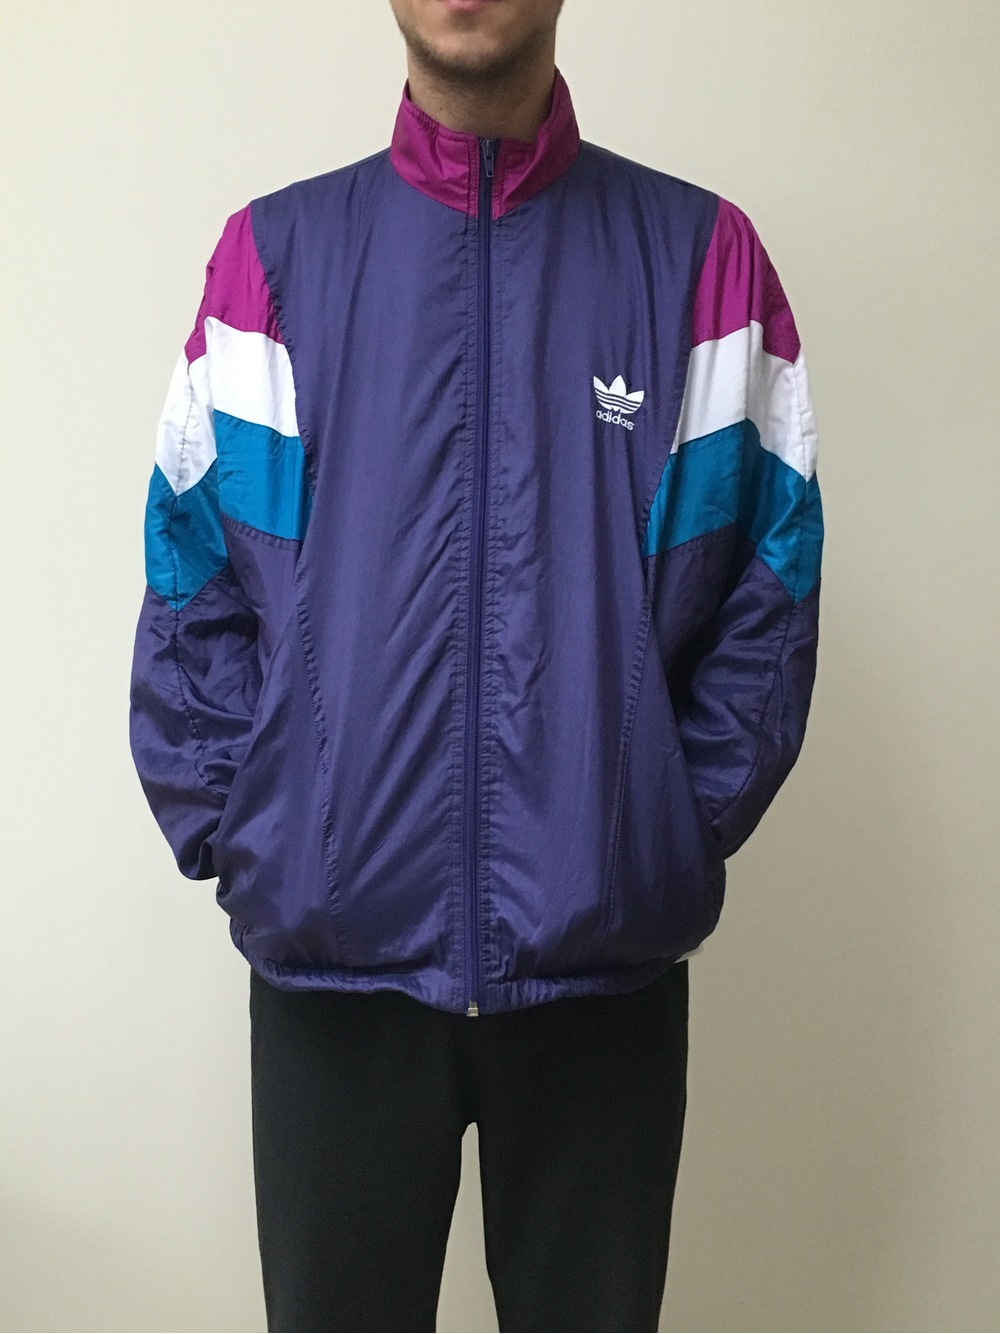 Vintage Adidas Track Jacket Windbreaker 438859 From